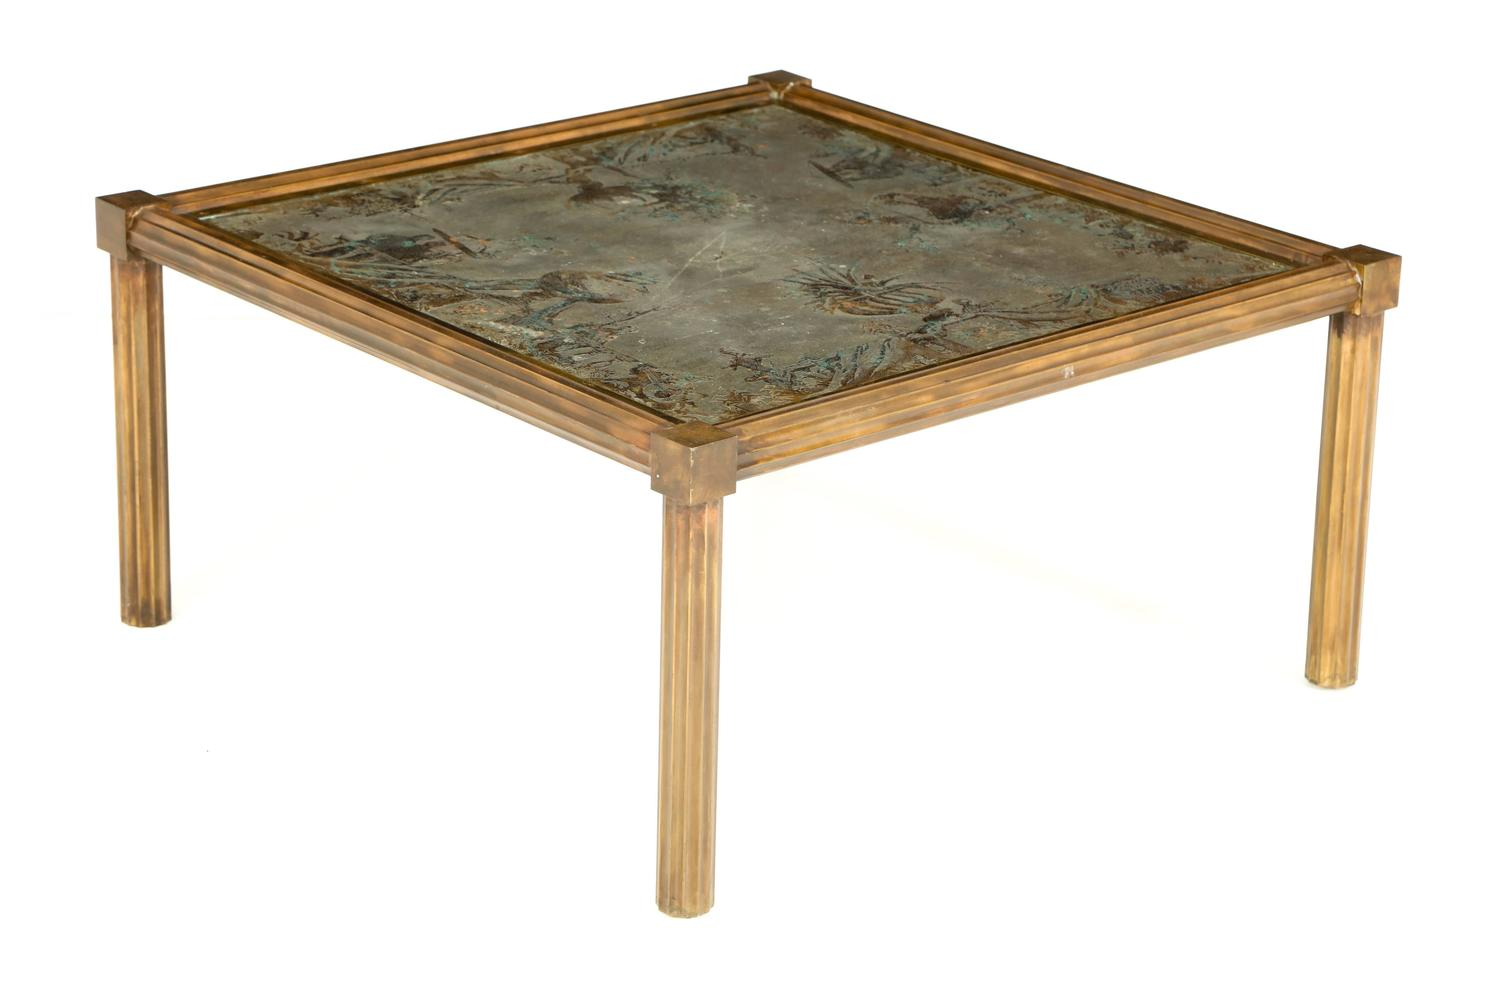 Unique Urn Motif Laverne Coffee Table For Sale At 1stdibs